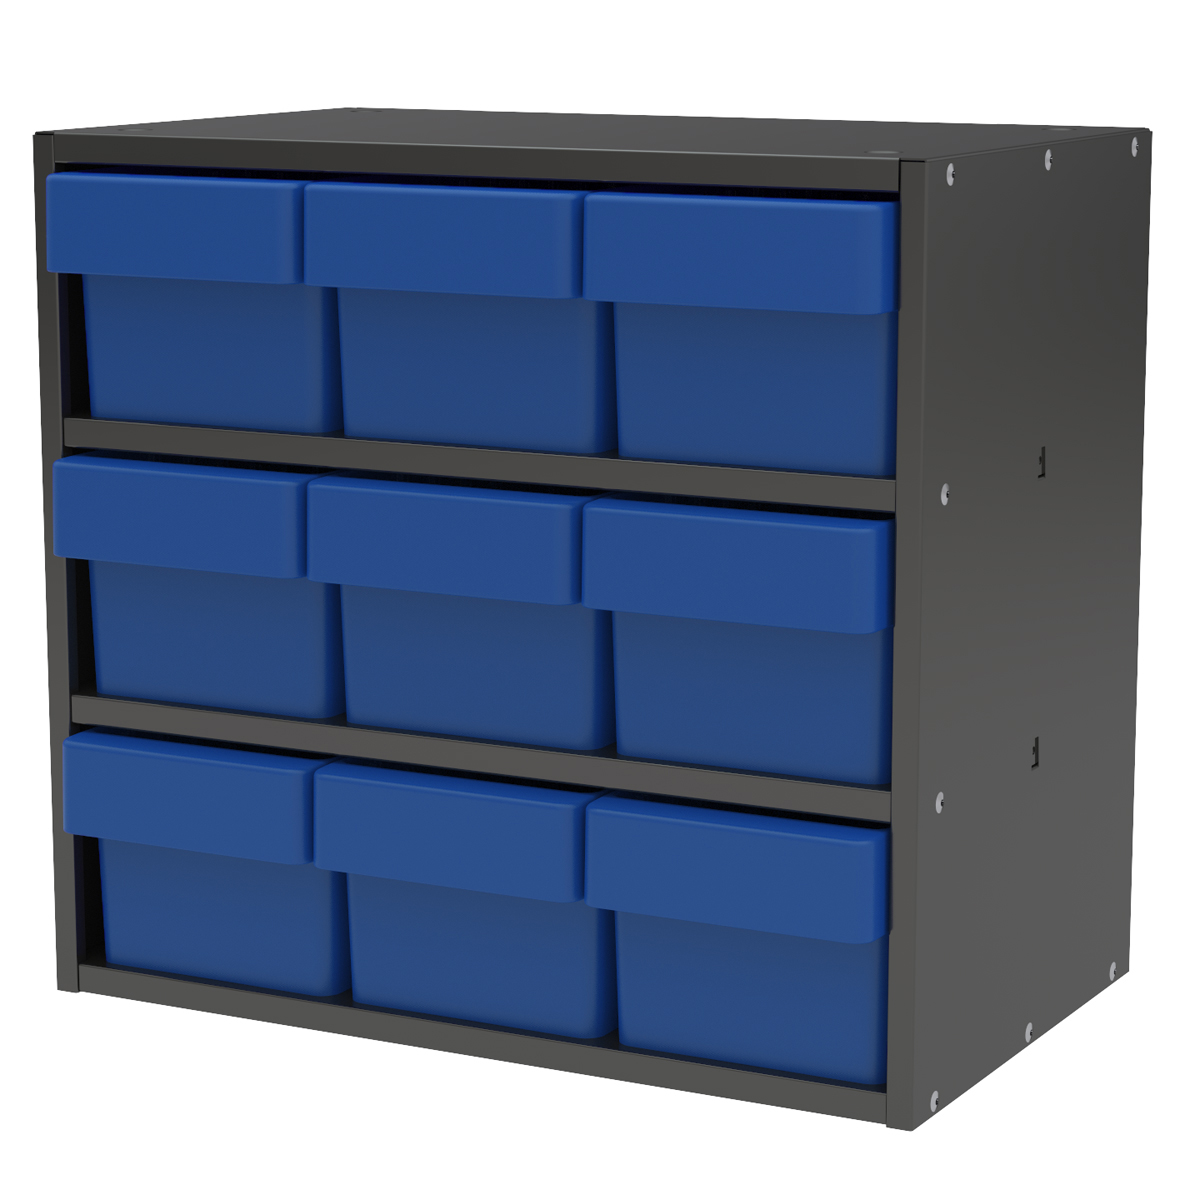 Item DISCONTINUED by Manufacturer.  Modular Cabinet, 18x11x16, 9 Drawers, Gray/Blue (AD1811C62BLU).  This item sold in carton quantities of 1.